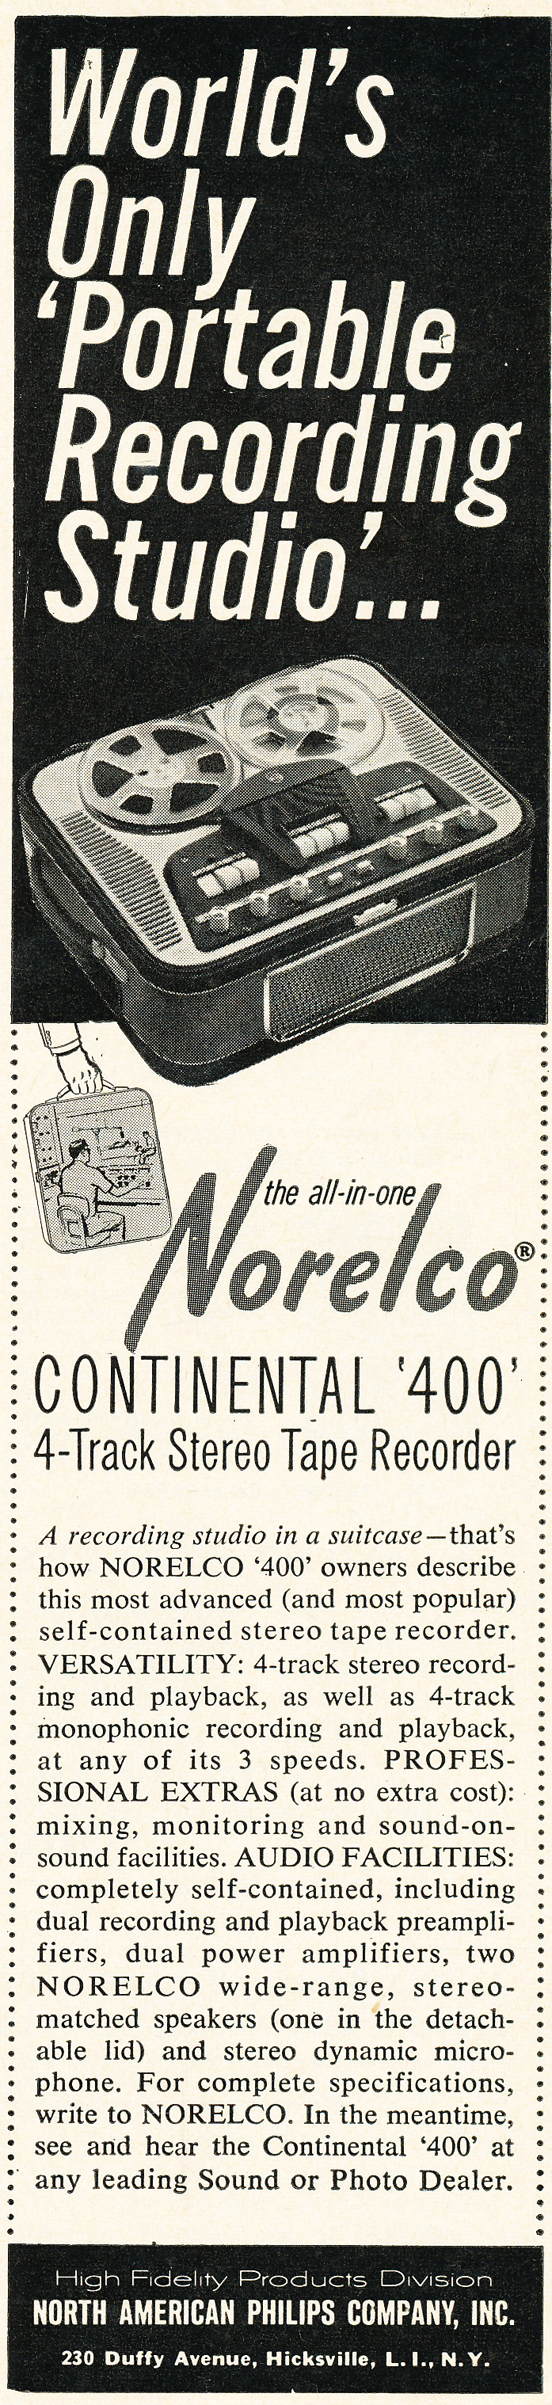 1962 ad for the Norelco Continental tape recorder in the Phantom Productions vintage recording collection